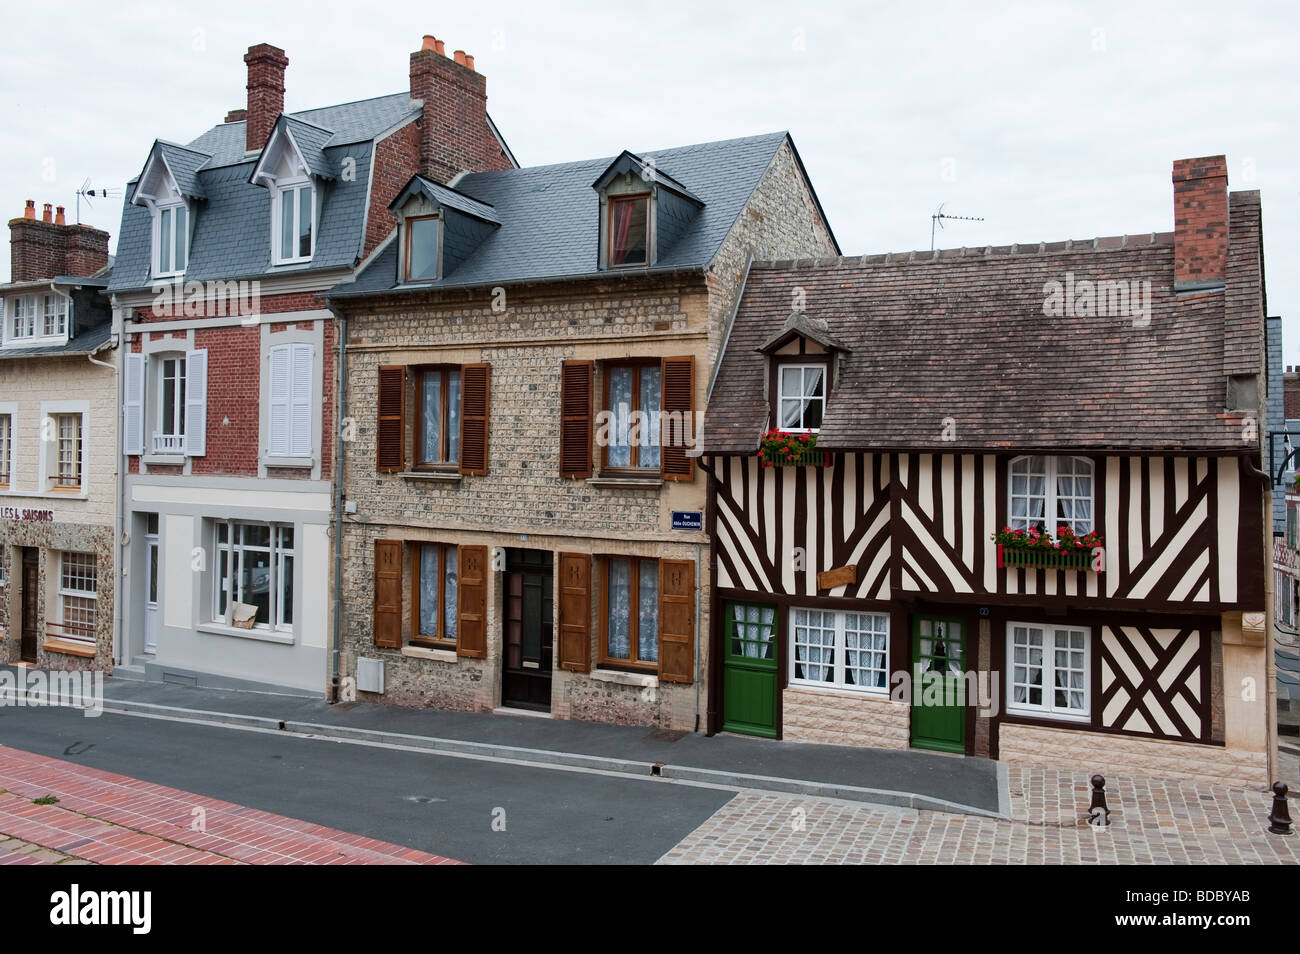 Street Of Quaint French Style Houses In Villerville Normandy Stock Photo Alamy